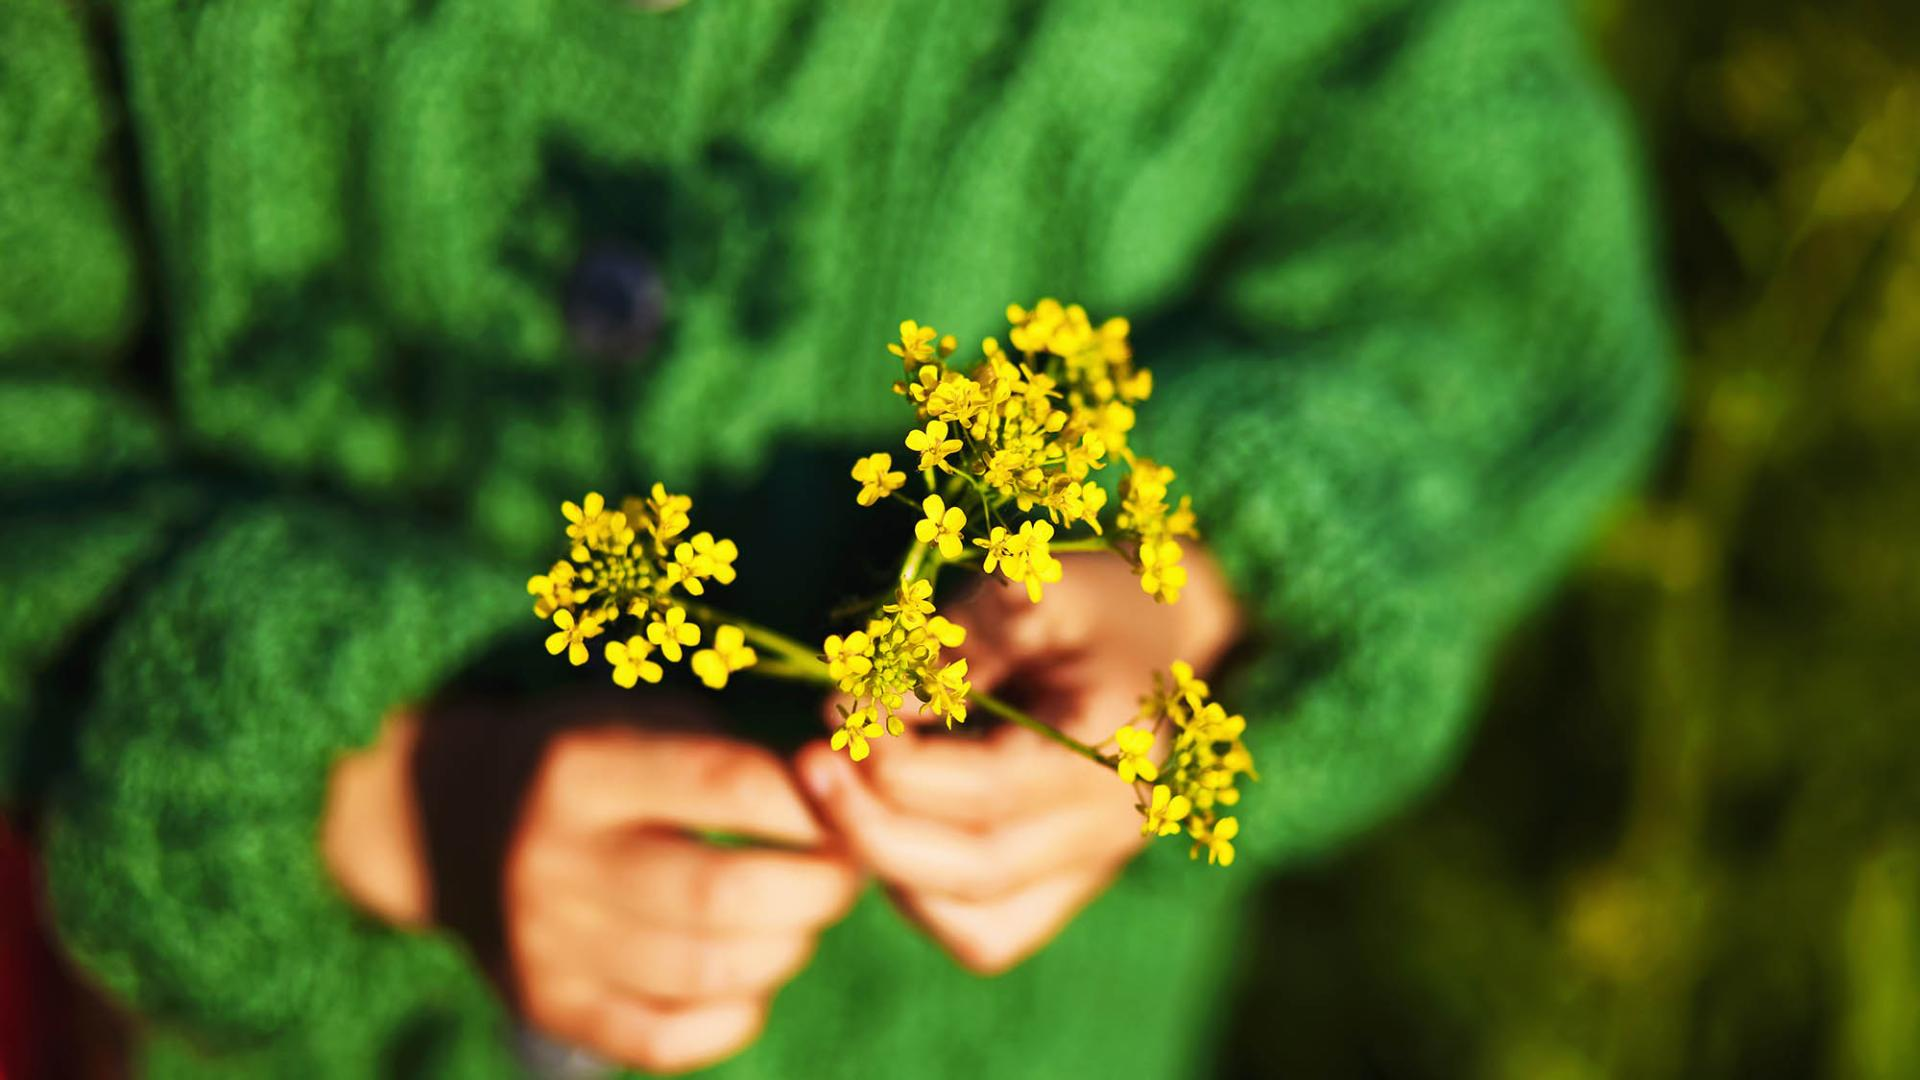 The flower yellow in hands